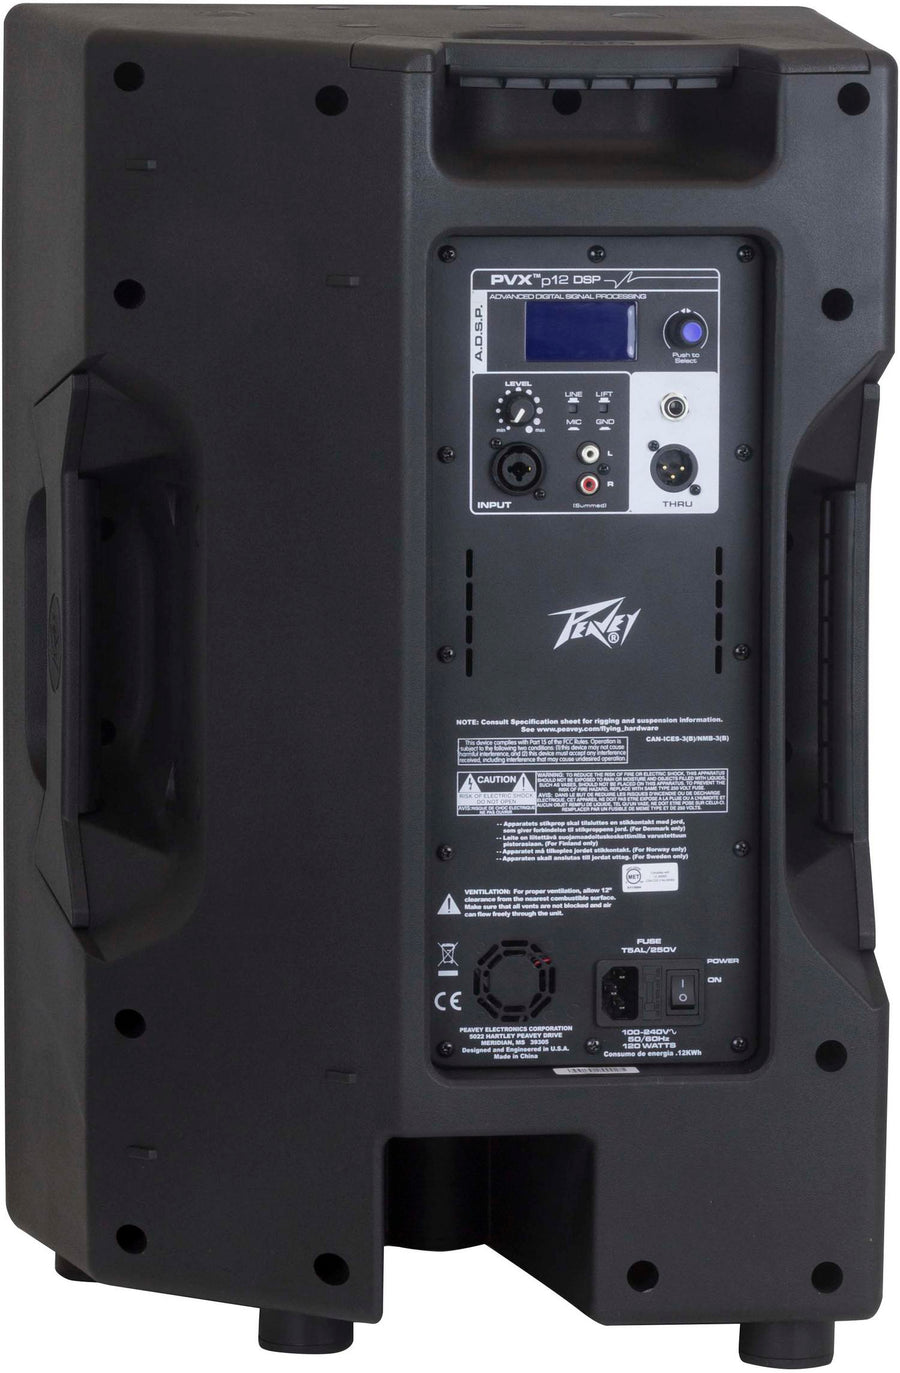 "Peavey PVX Series 12"" Powered Speaker w/DSP"